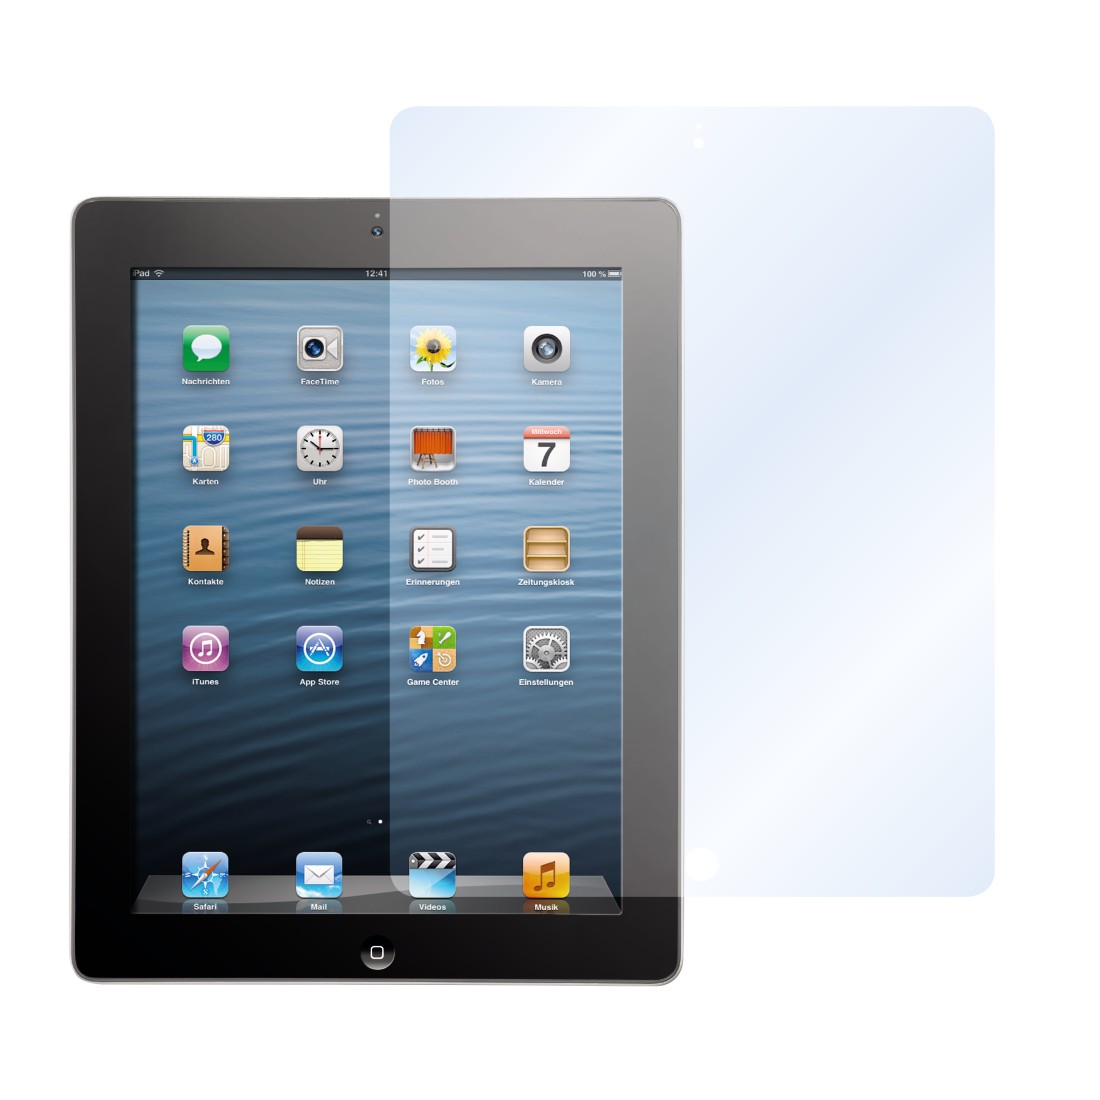 00107805 Hama Protection Foil For Apple Ipad 2 3rd 4th Generation Electronic Appliance Protector Awx2 High Res